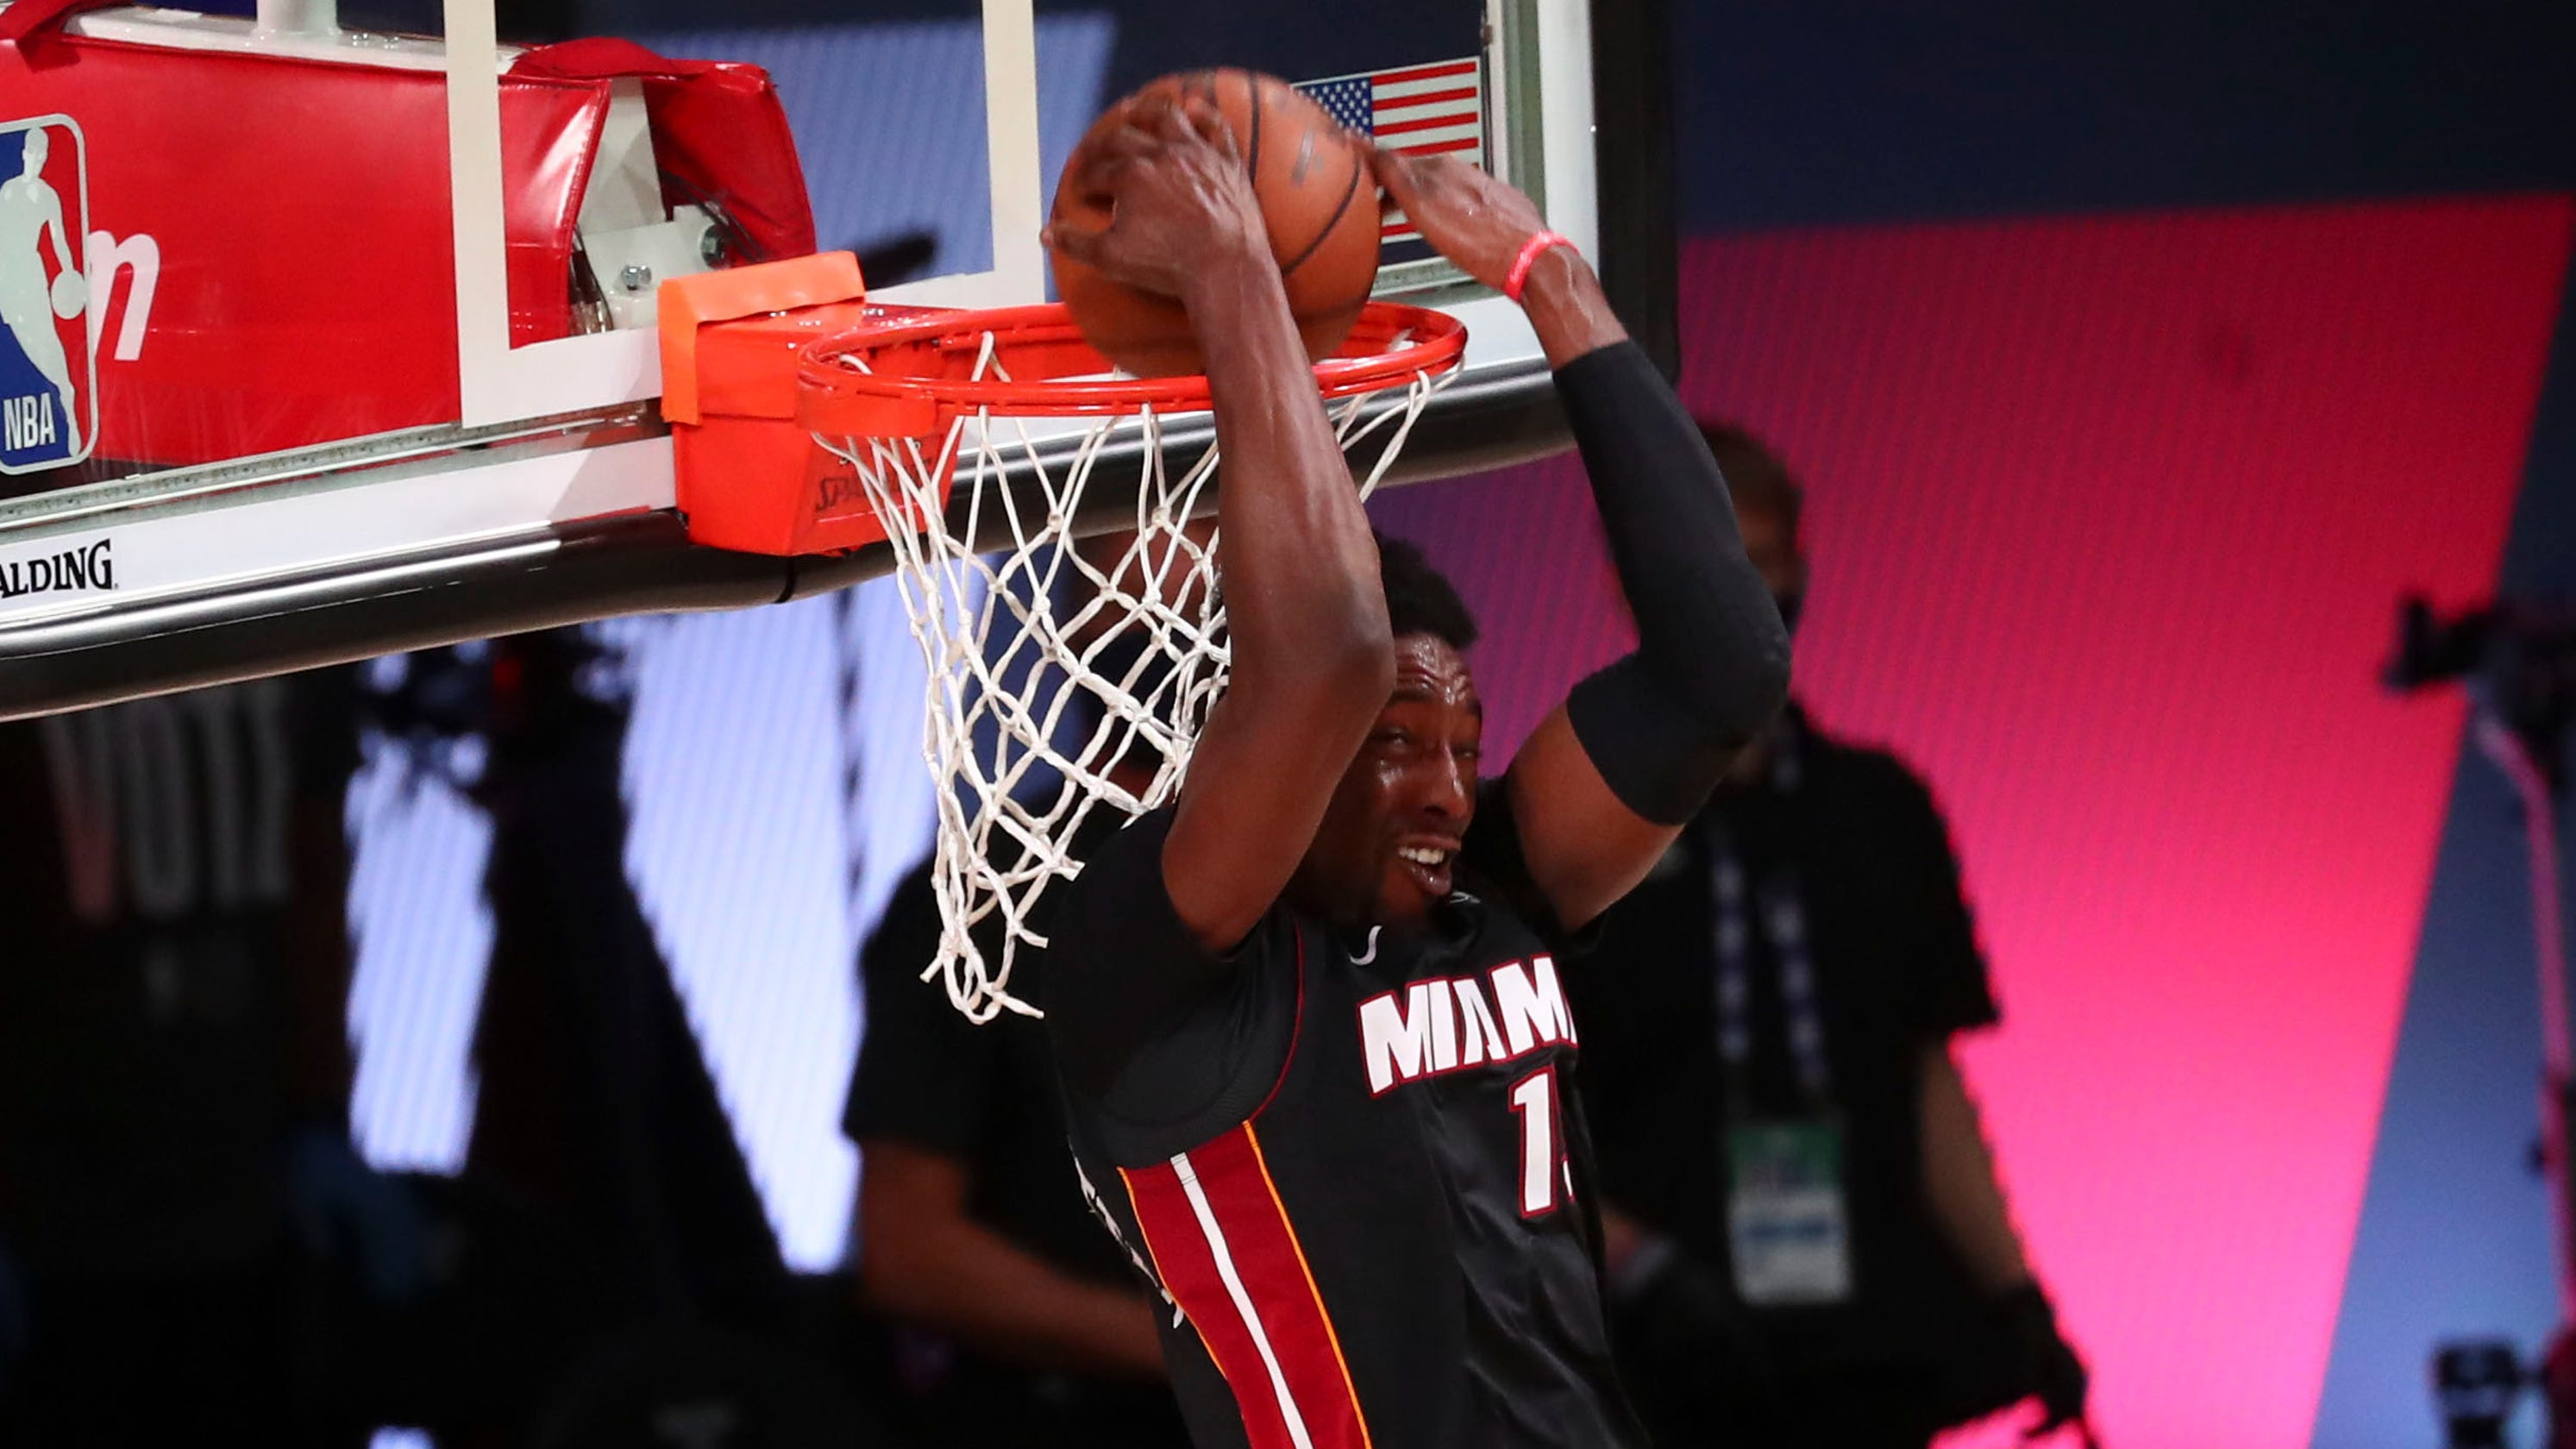 Bam Adebayo emerging as star after leading Miami Heat to NBA Finals